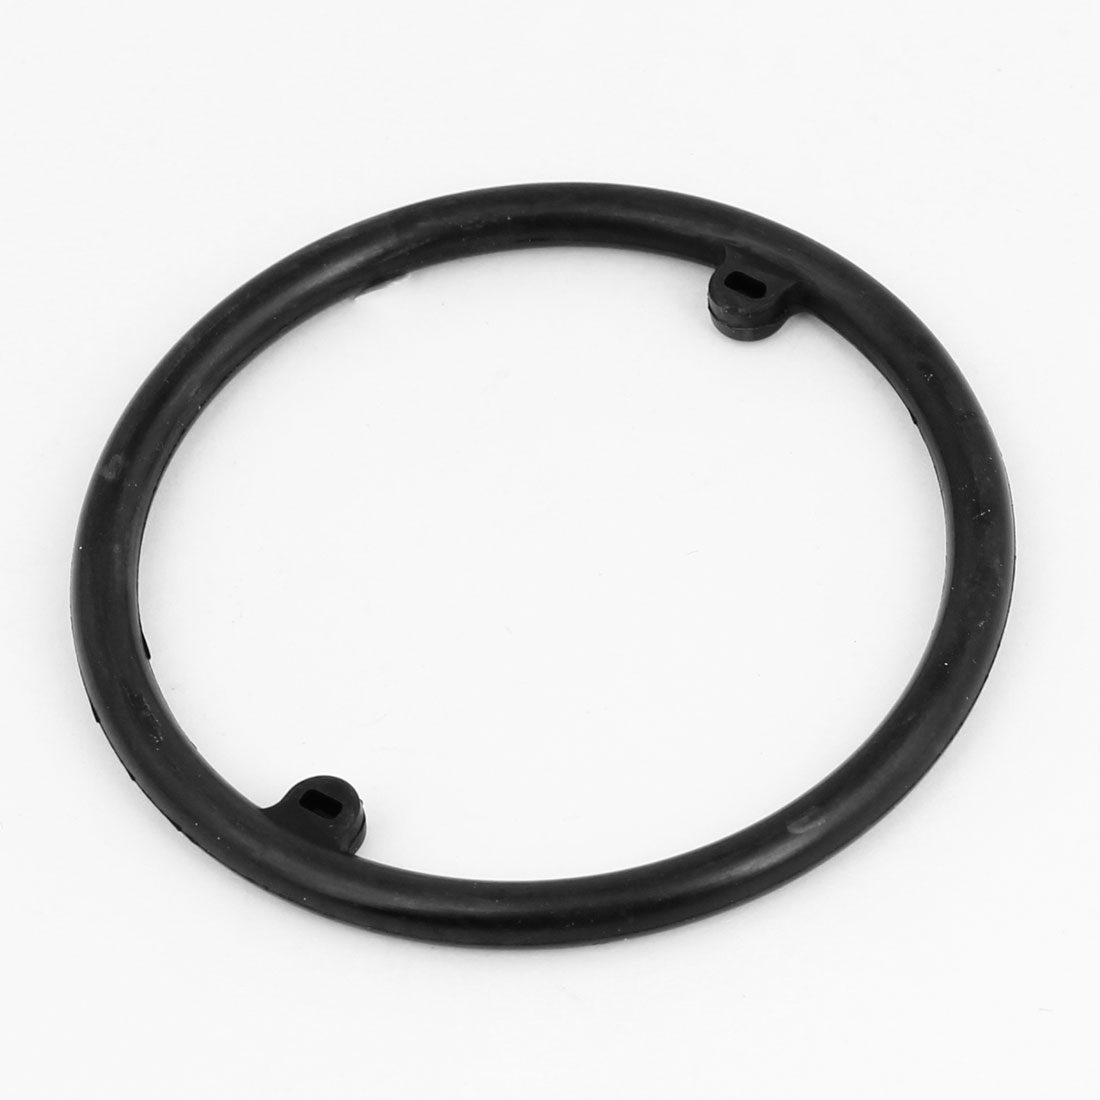 038 117 070A Auto Car Engine Oil Gasket Seal Repairing Part